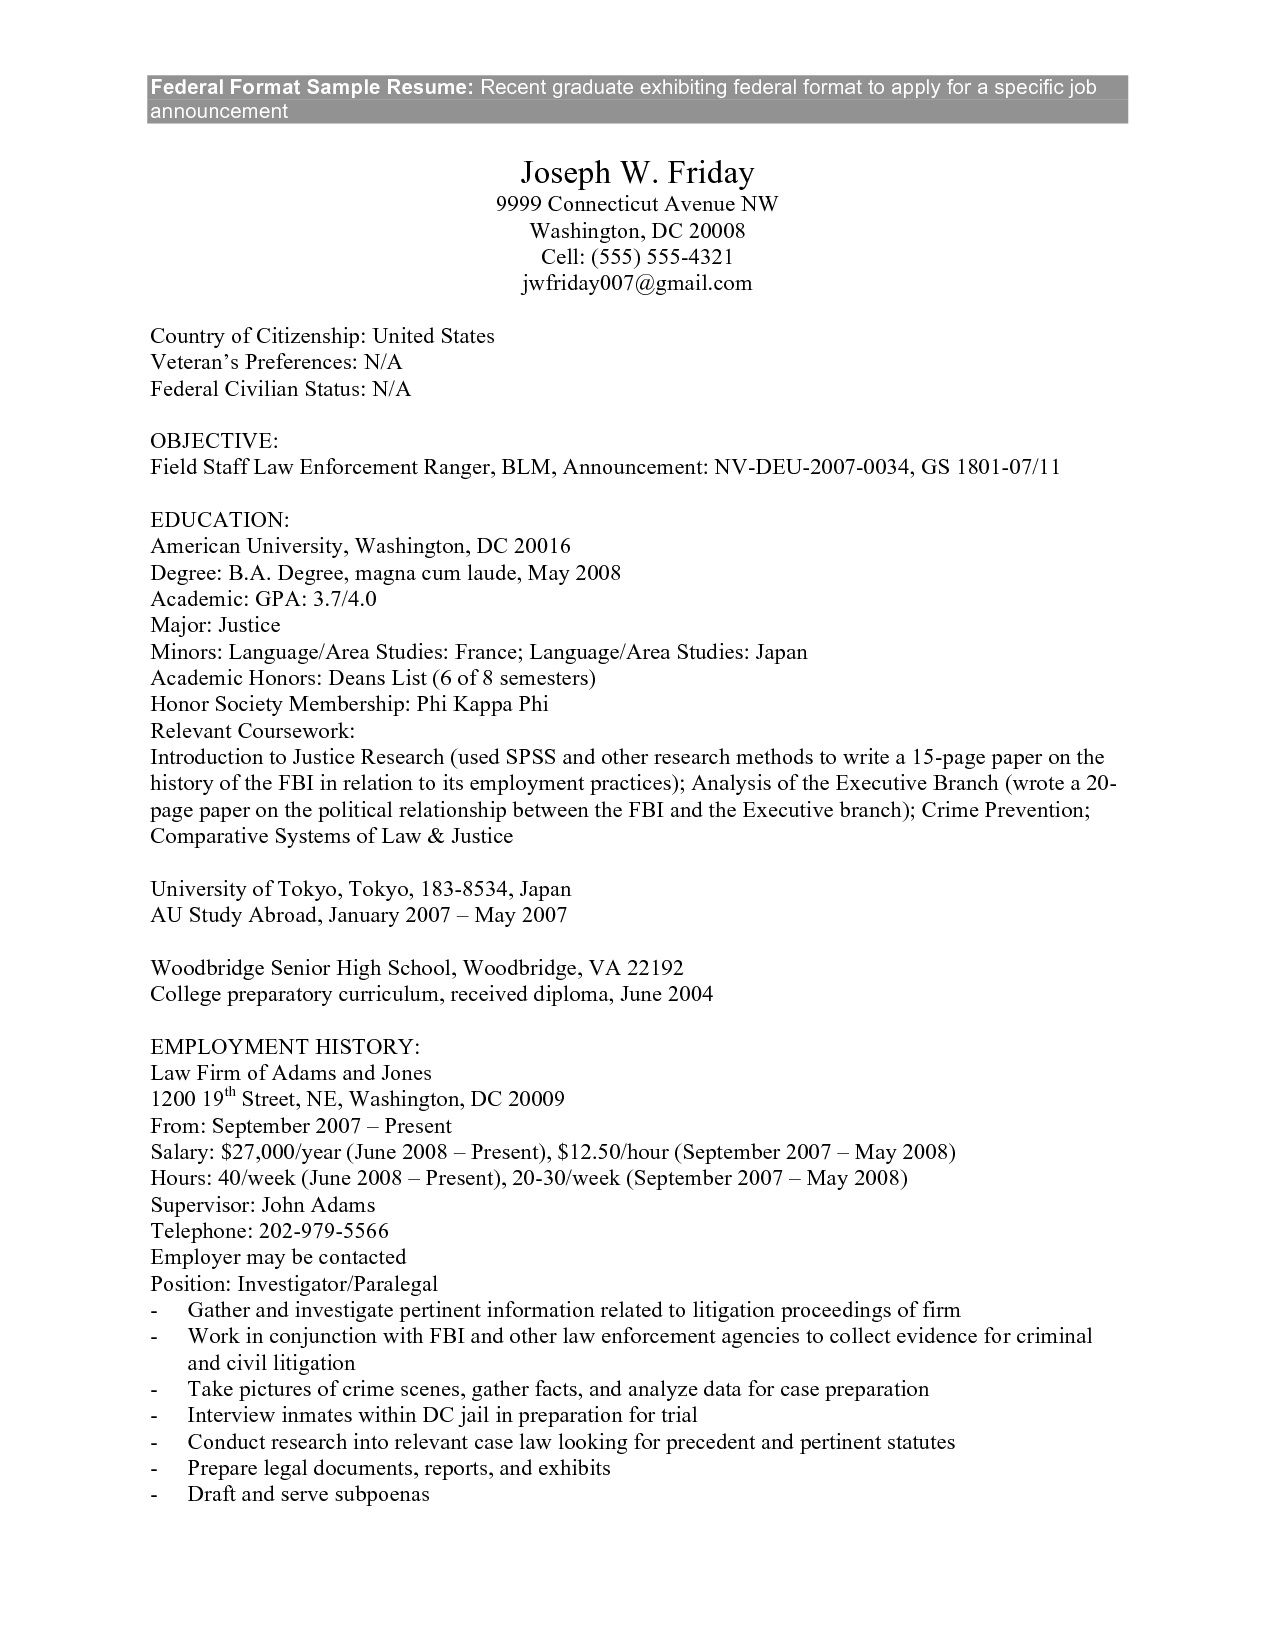 Construction Management Resume Writing Services Federal Government Resume  Sample Federal Government Resume Template Free Format Templates